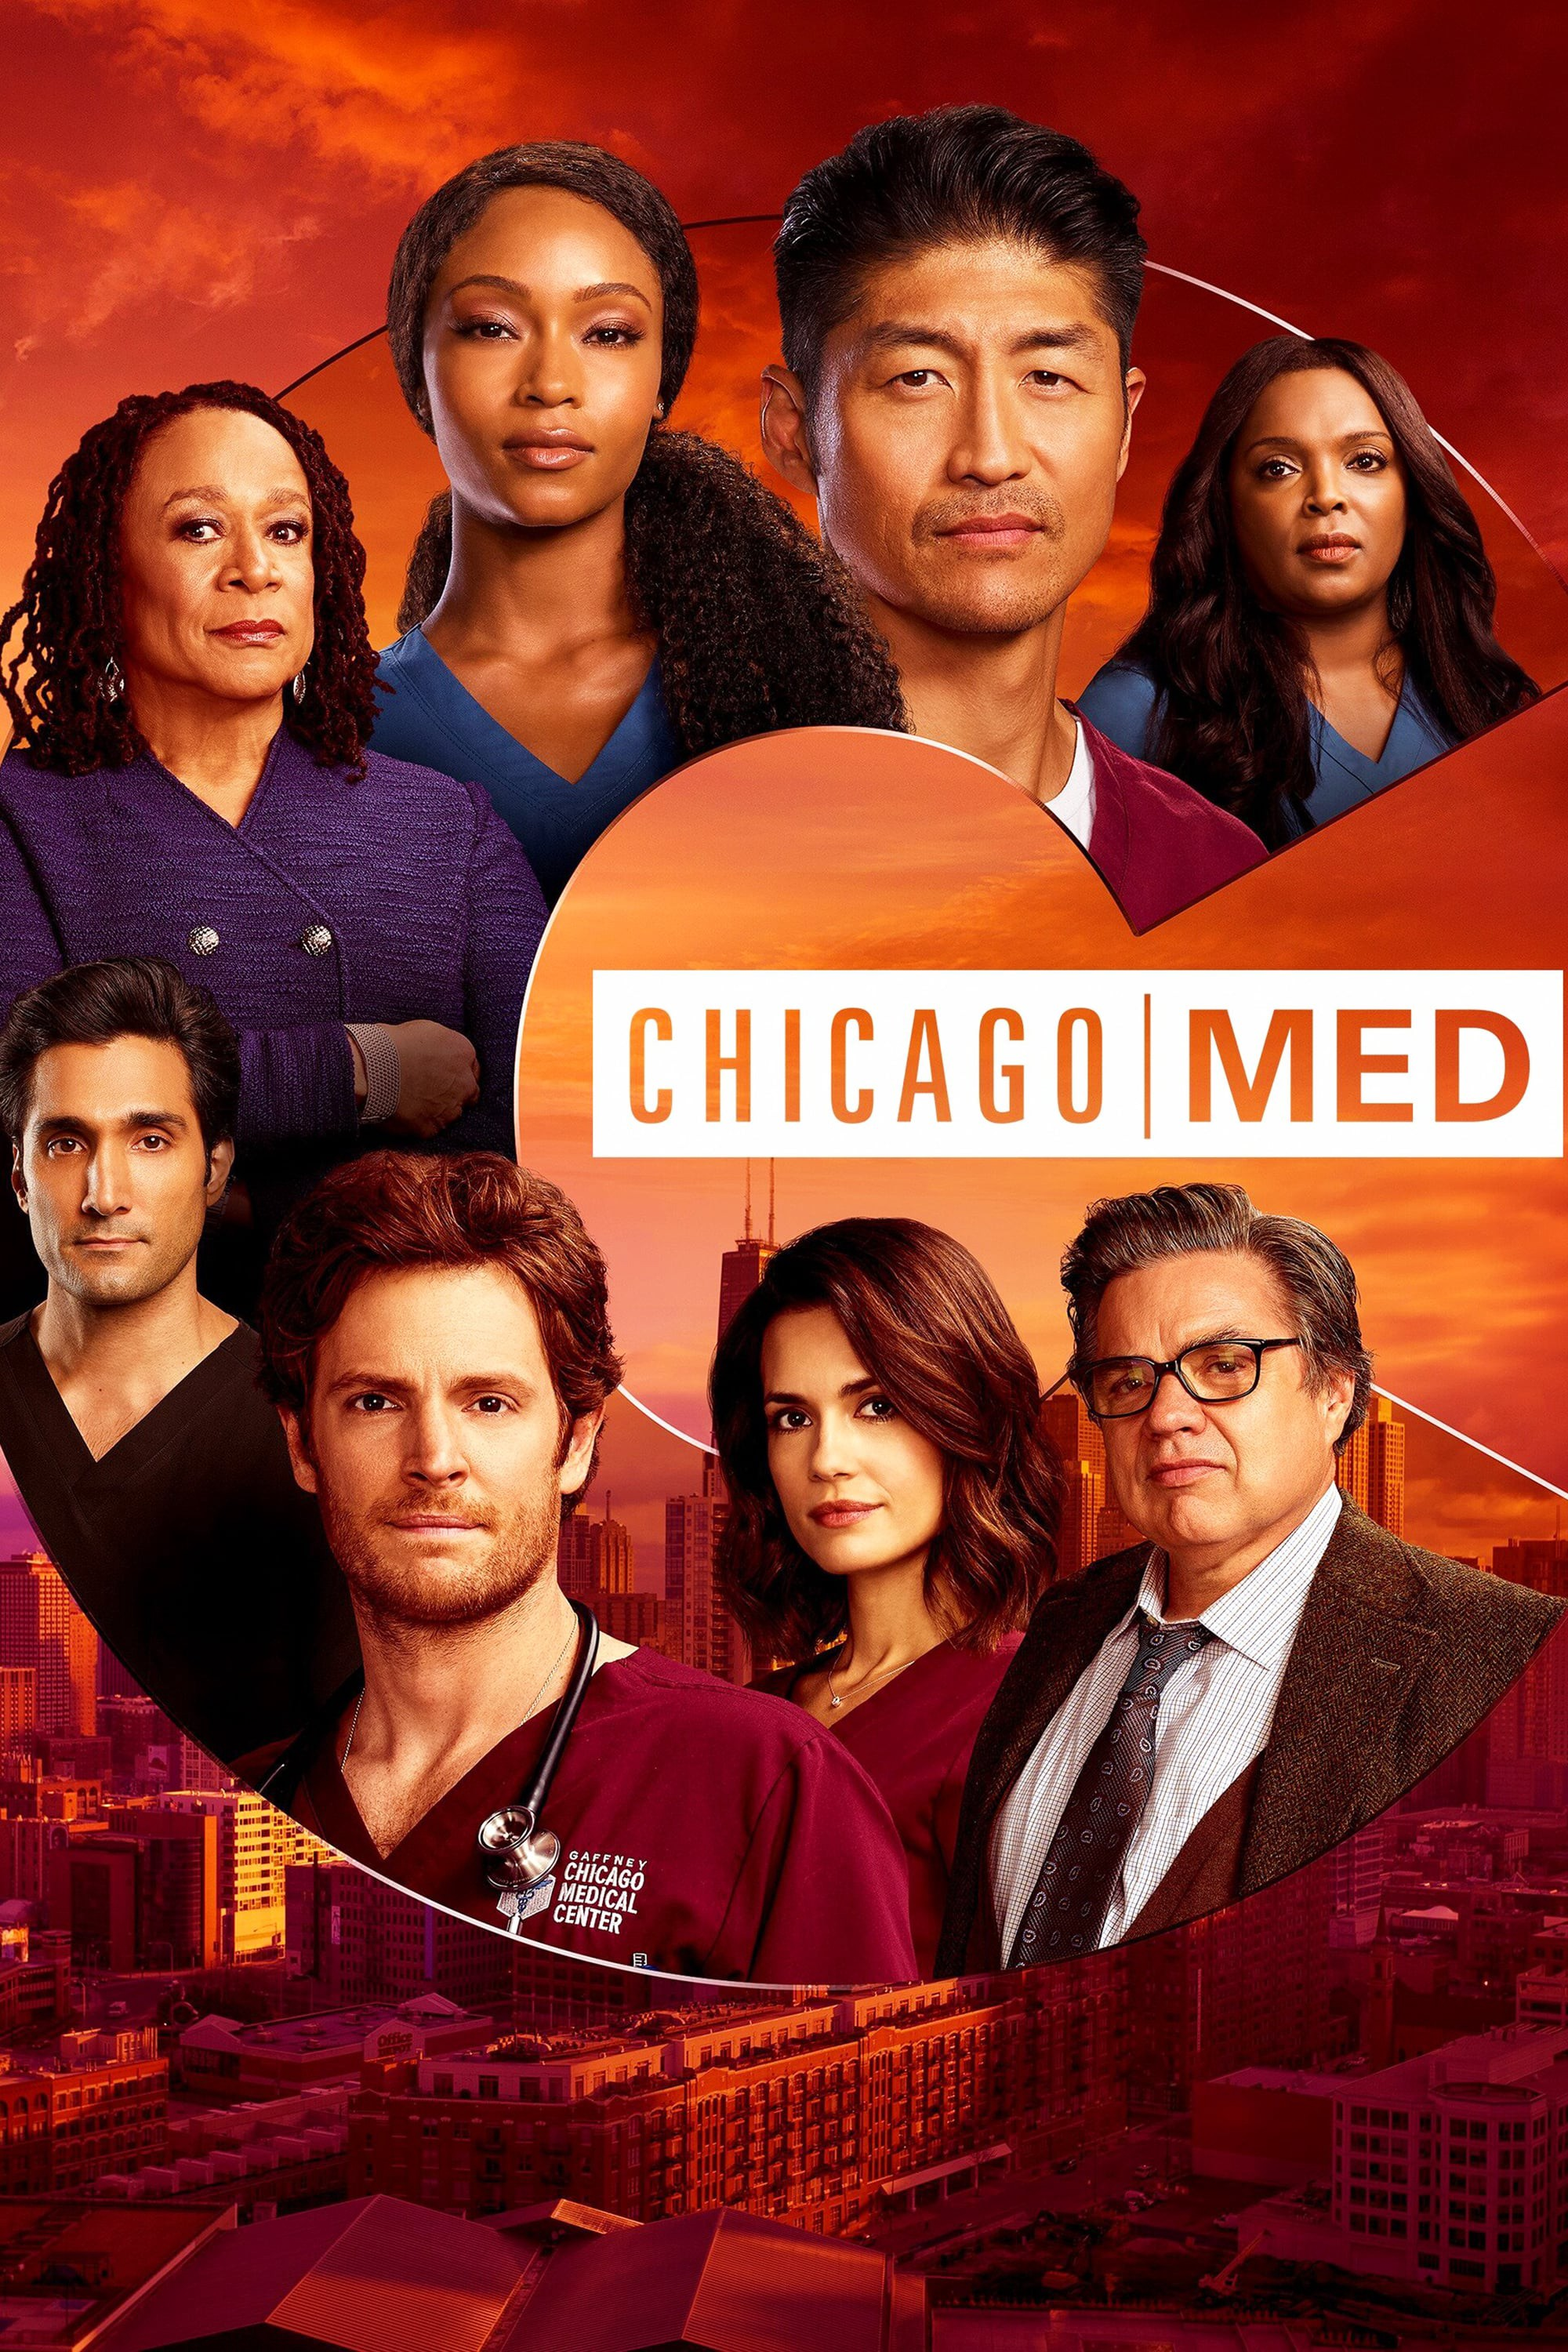 Chicago Med Season 6 Episode 4 - In Search of Forgiveness, Not Permission